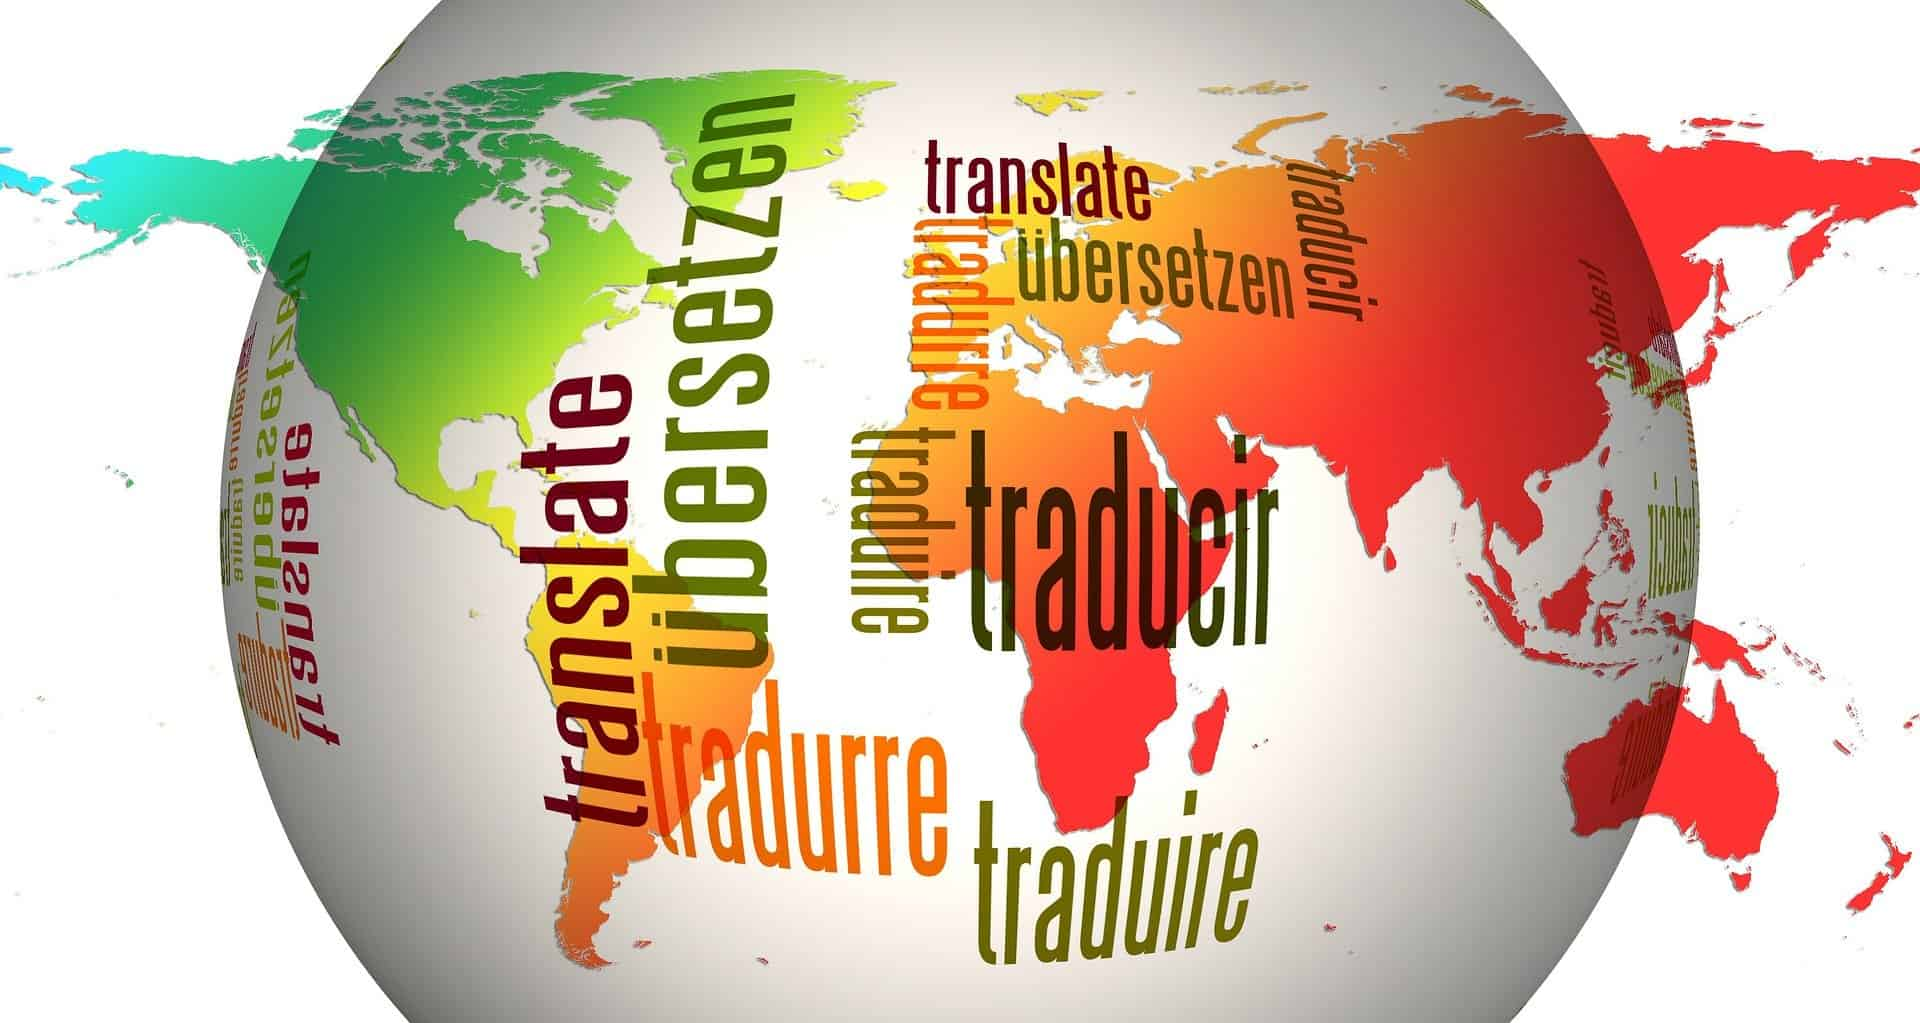 The words translate written in different languages laid across a globe